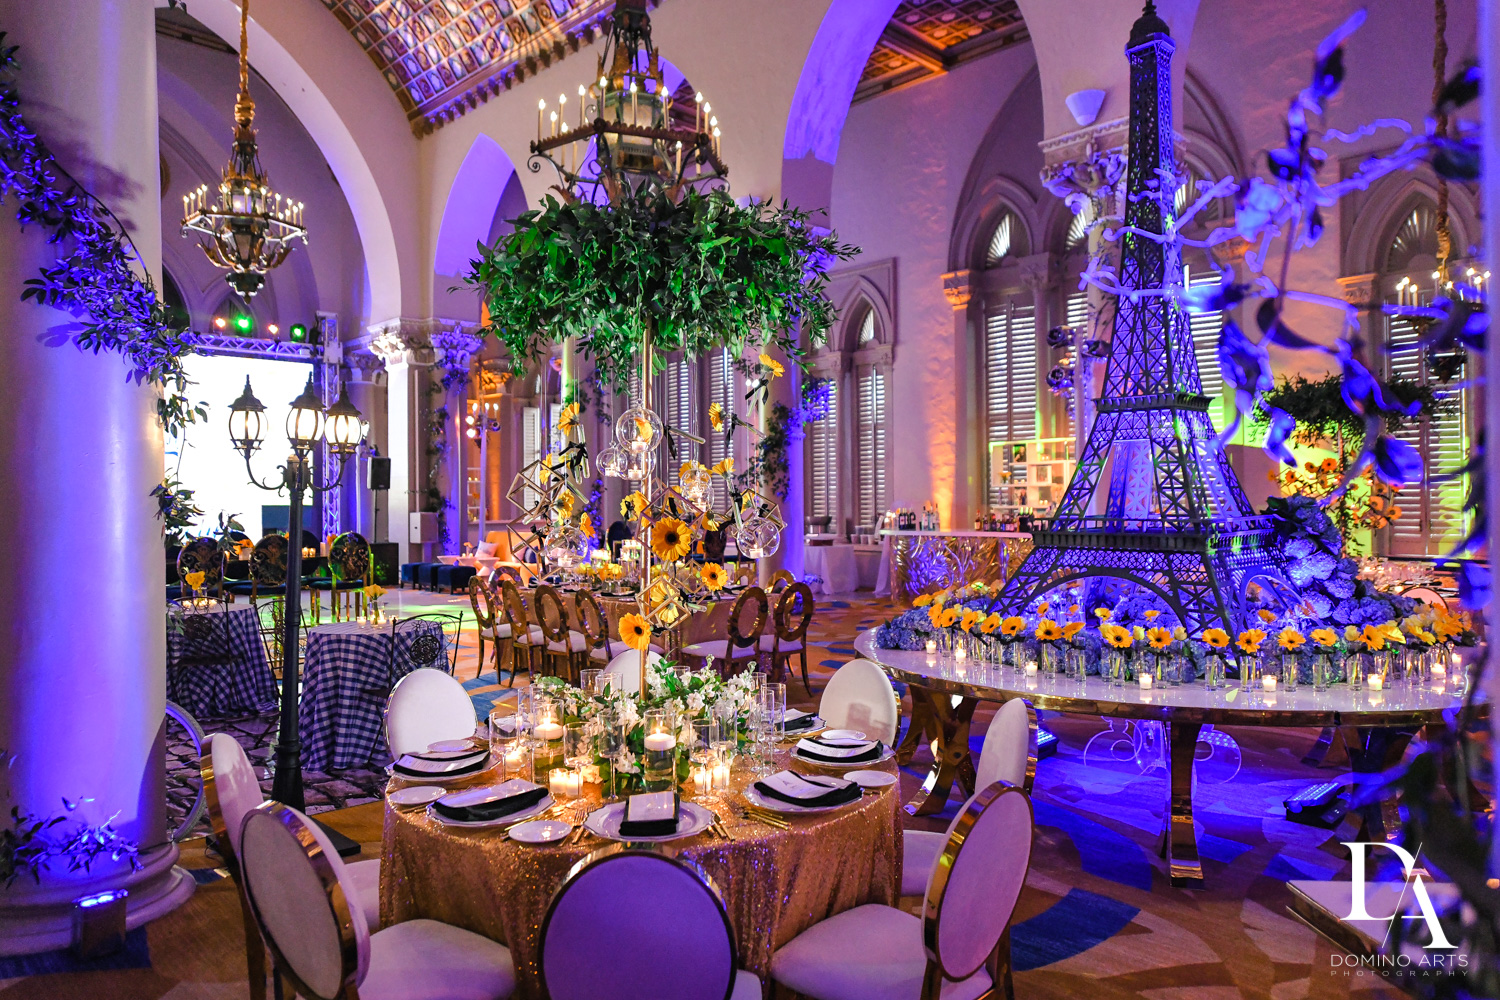 luxury decor at Madeline in Paris theme Bat Mitzvah at Boca Raton Resort and Club by Domino Arts Photography